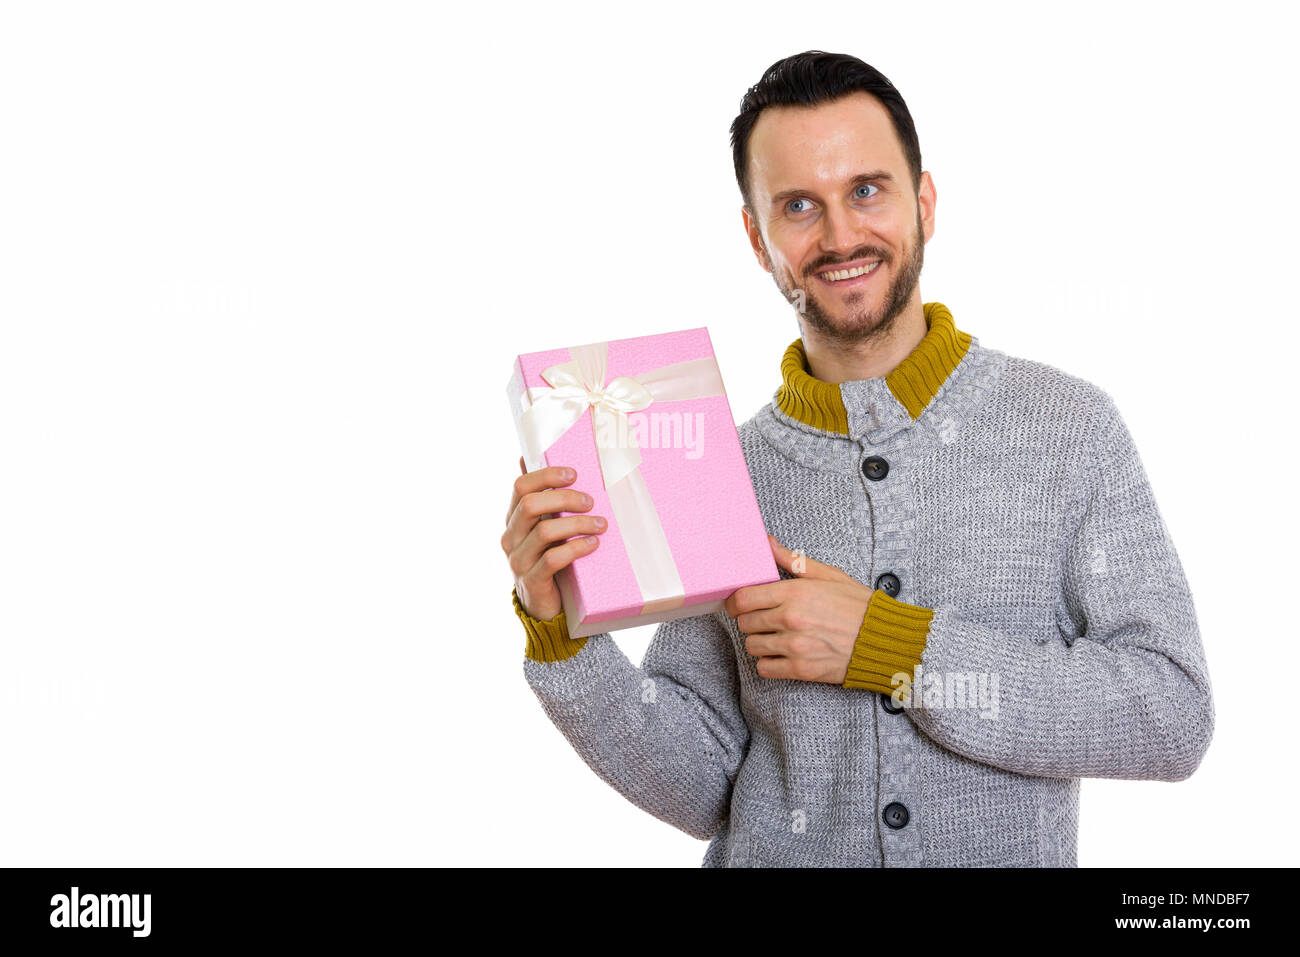 Studio shot of happy young man smiling and guessing gift box ready for Valentine's day - Stock Image